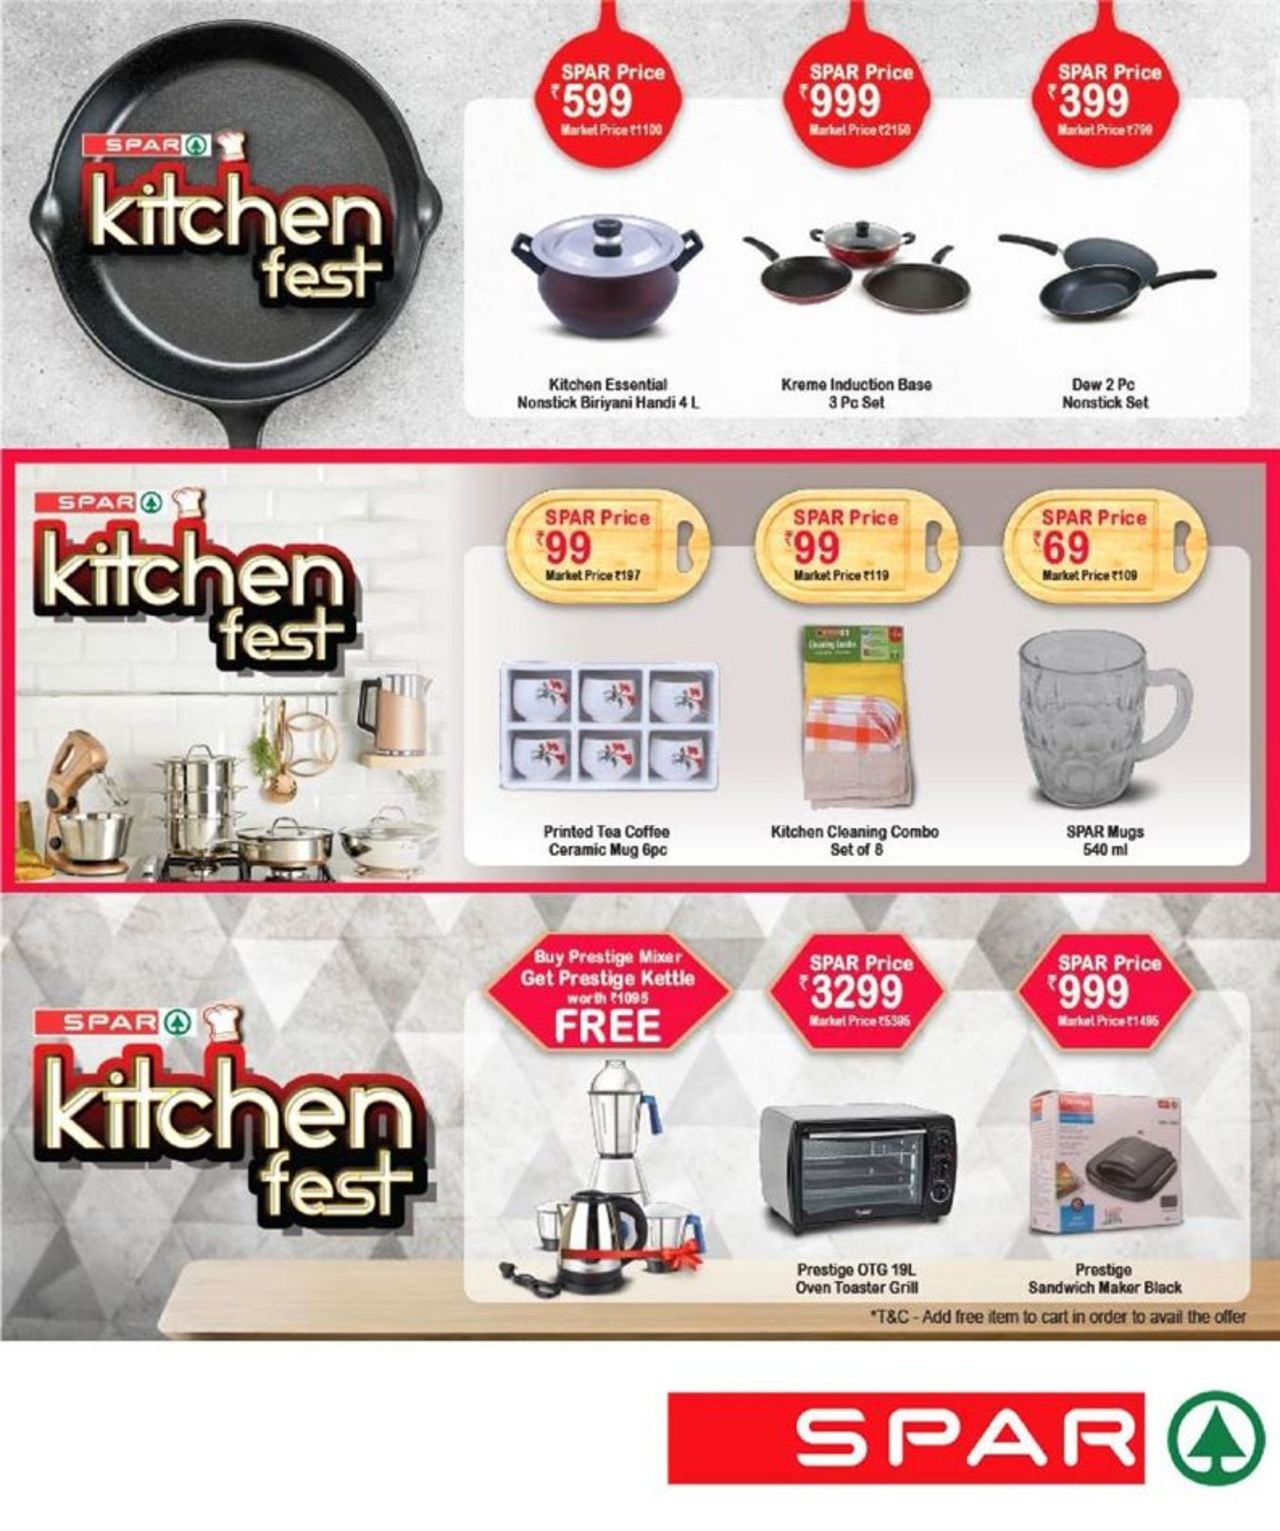 Spar Hypermarket catalogue valid from 10/06/2019 - page number 1